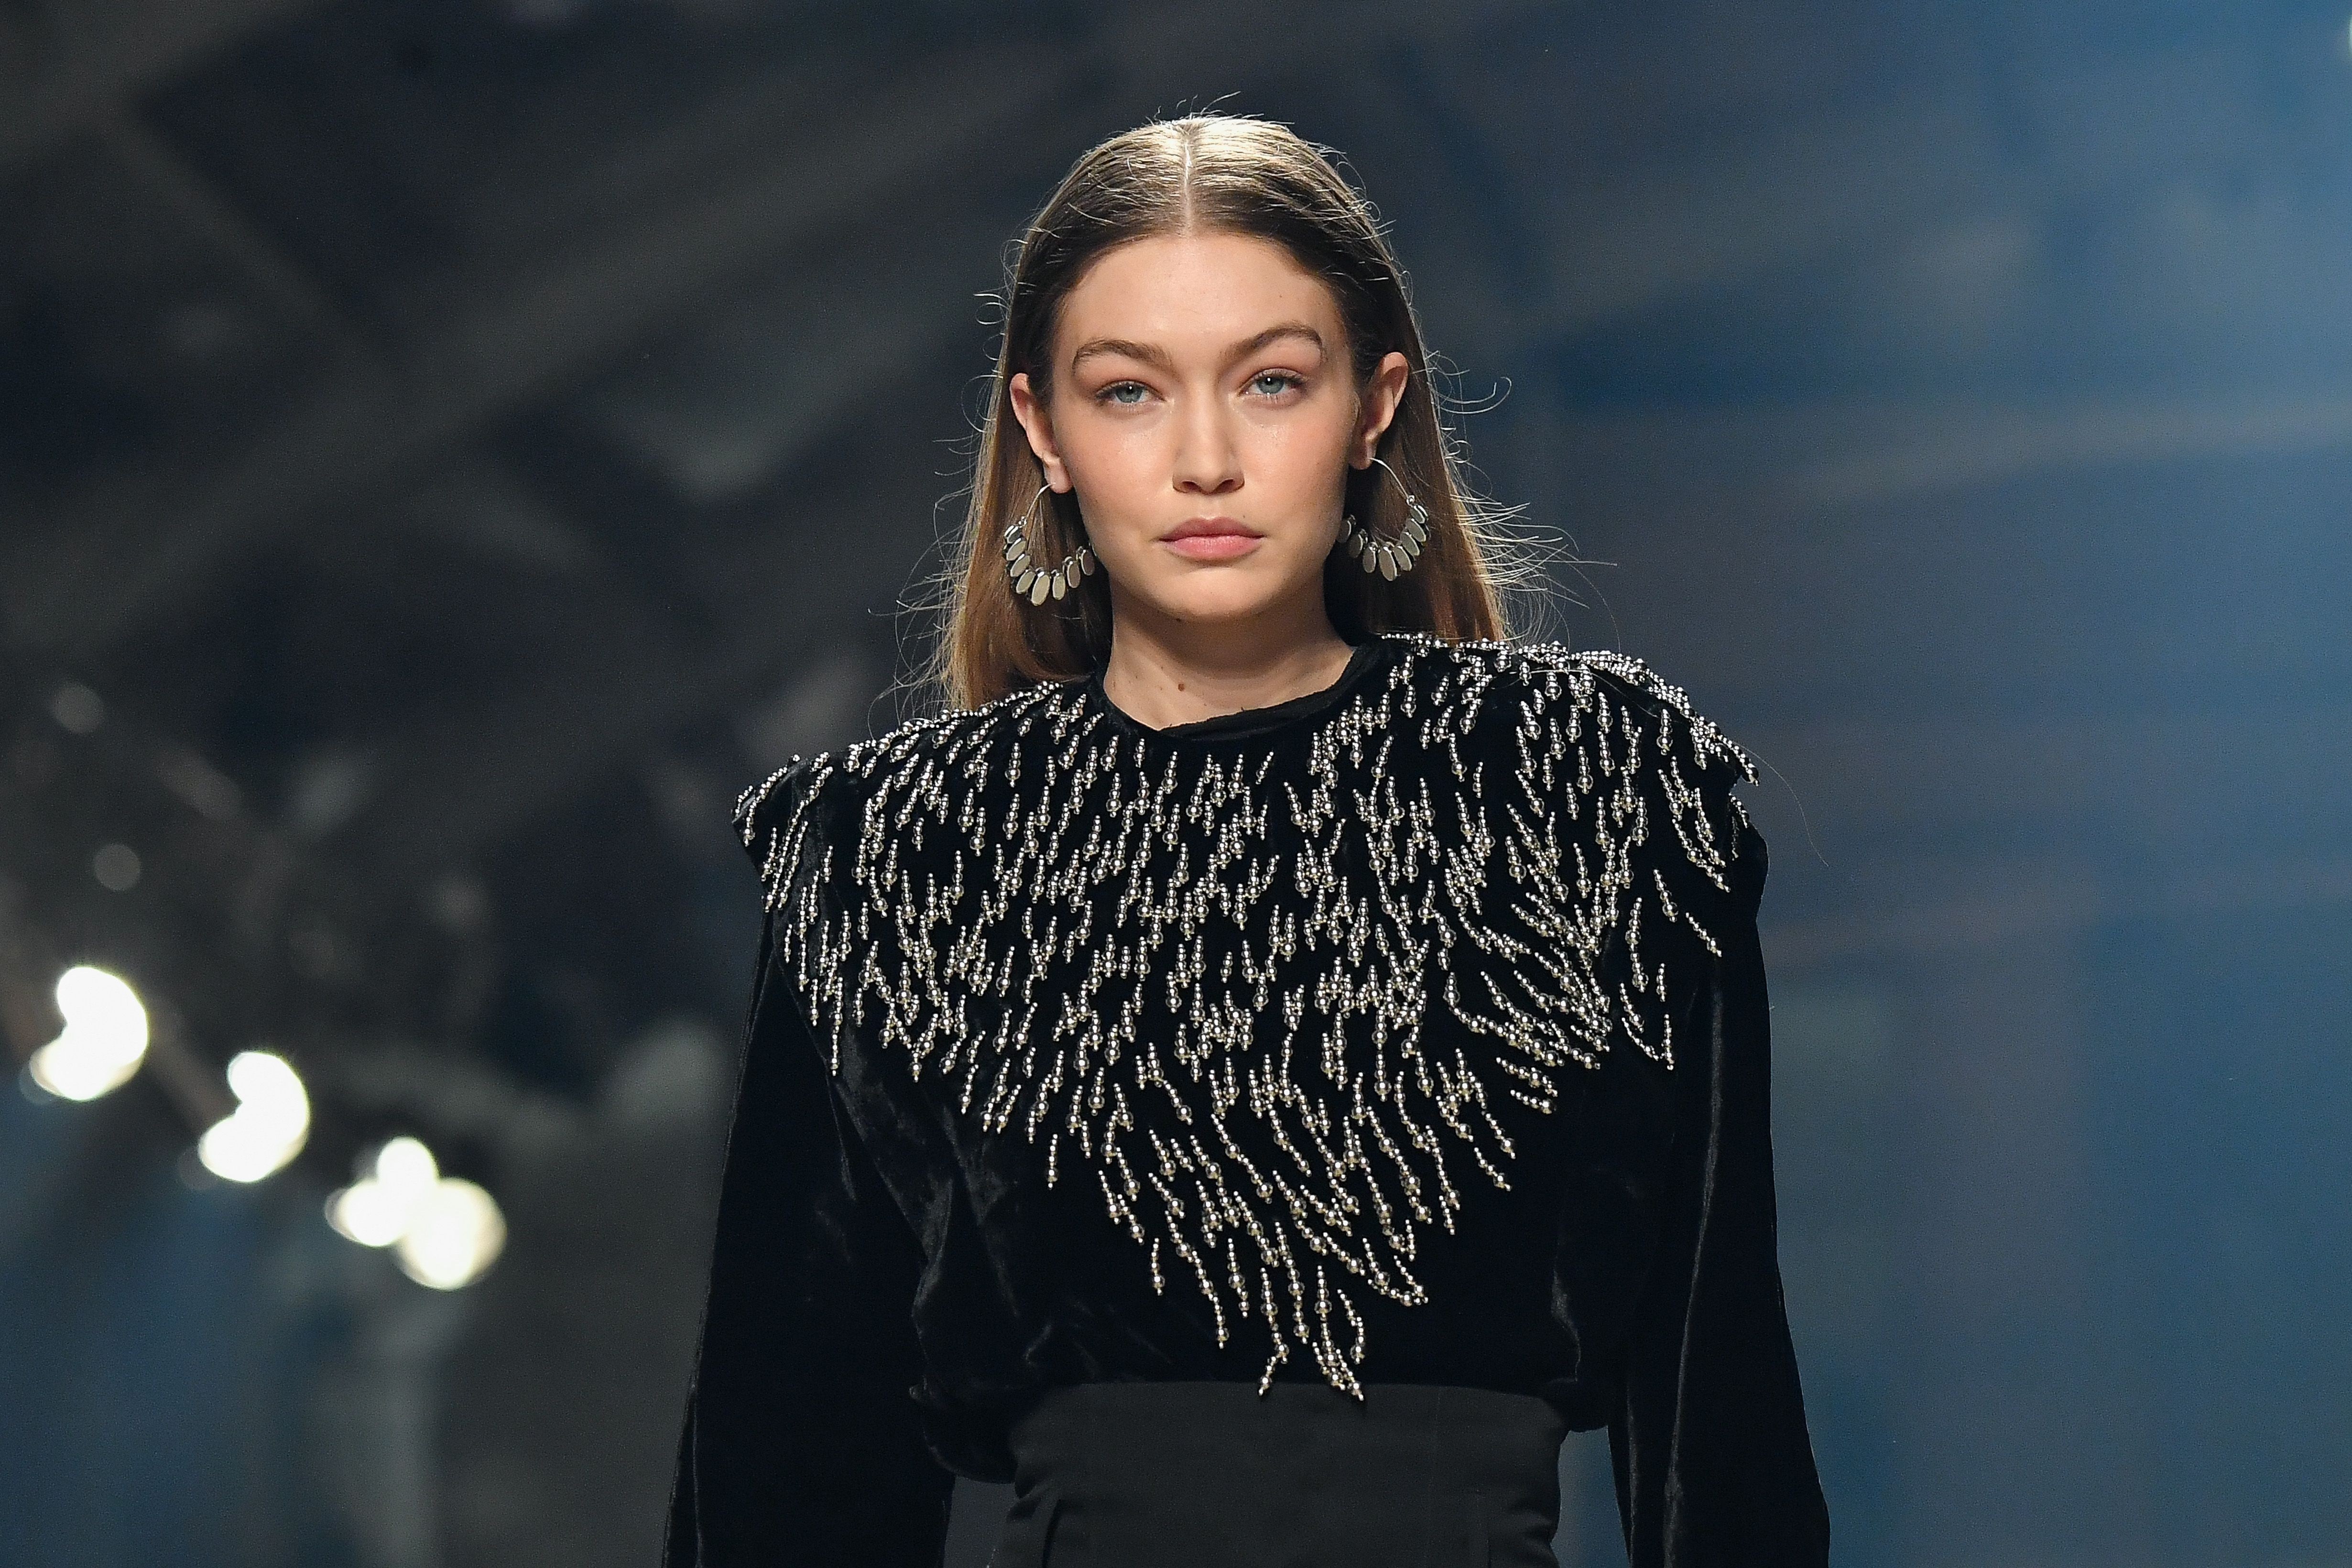 Gigi Hadid walking in the Isabel Marant show at Paris Fashion week on February 27, 2020 | Getty Images